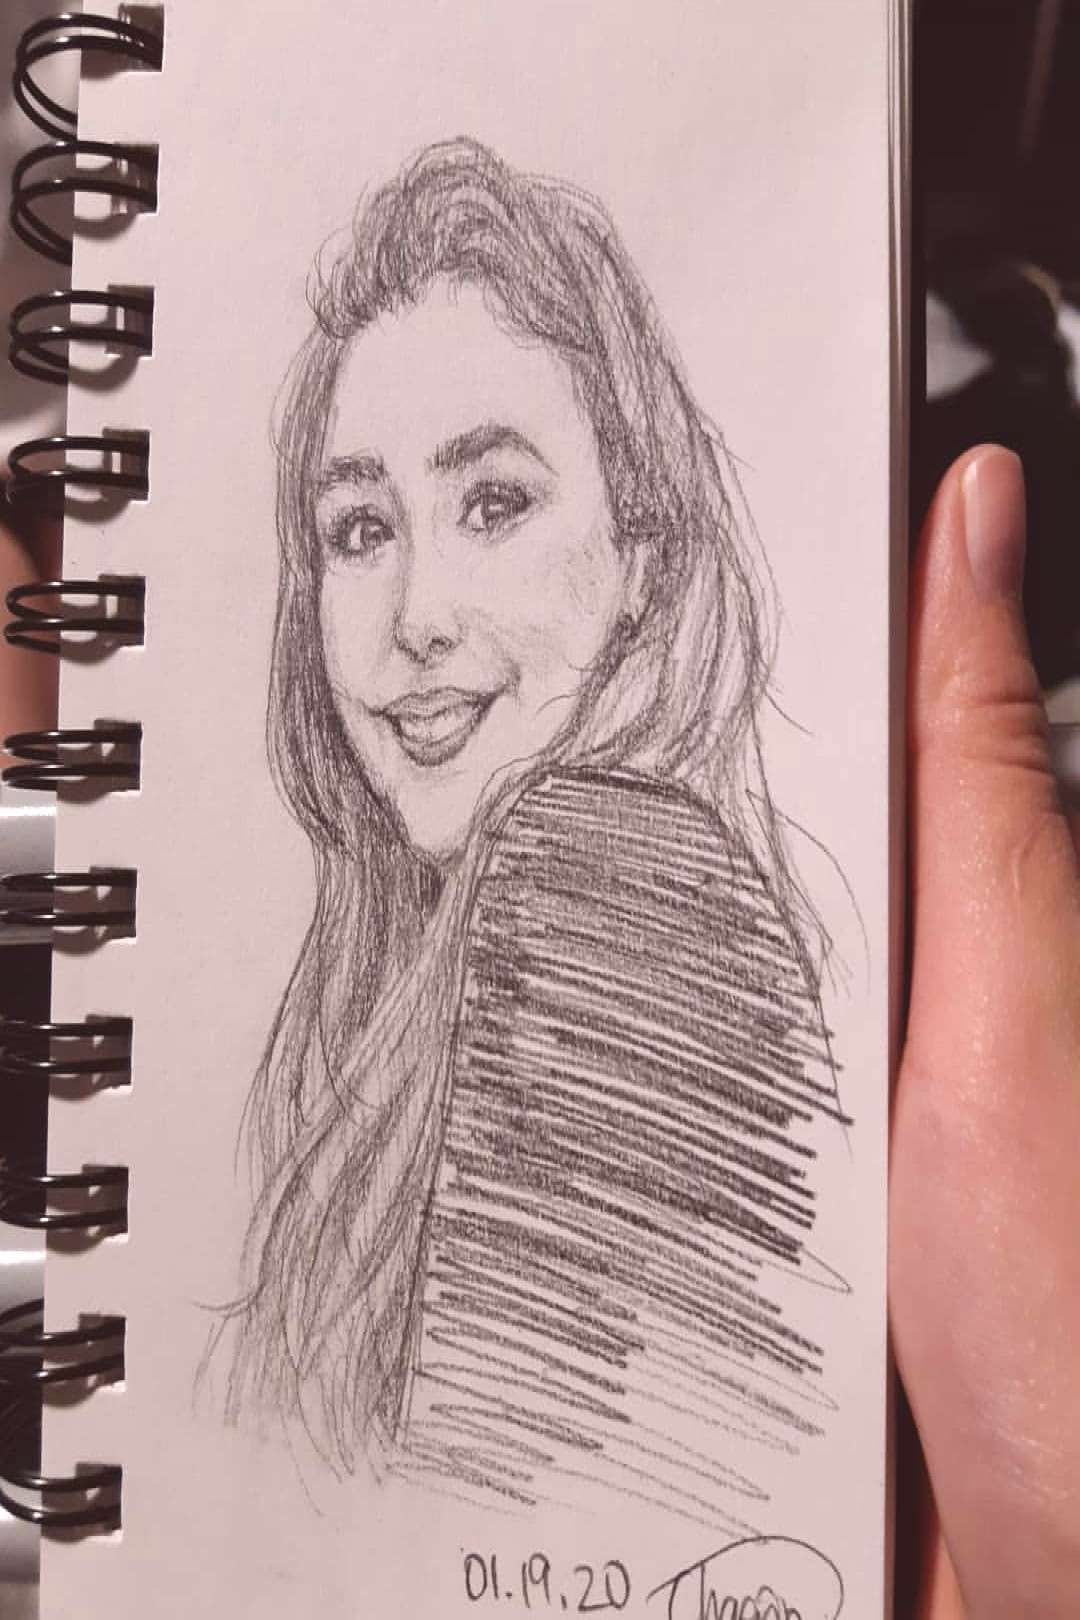 #pencildrawing #fastdrawing #friendpic #portrait #picture #drawing #friend #people #more #one #and #or #portrait #picture #pencildrawing #fastdrawing #friend #friendpicYou can find Friend pictures and more o...